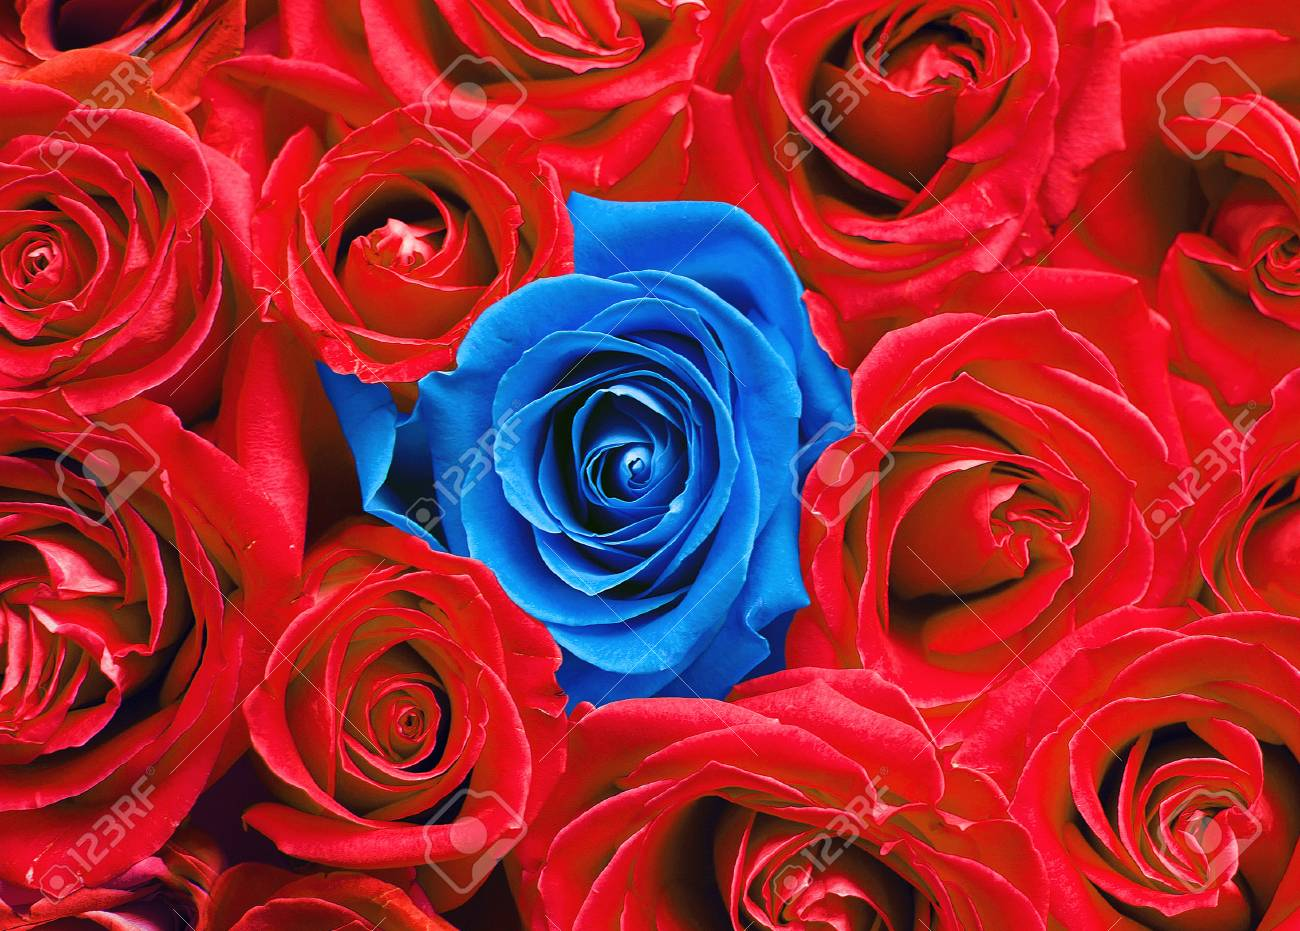 Blue rose among red ones. - 78331268